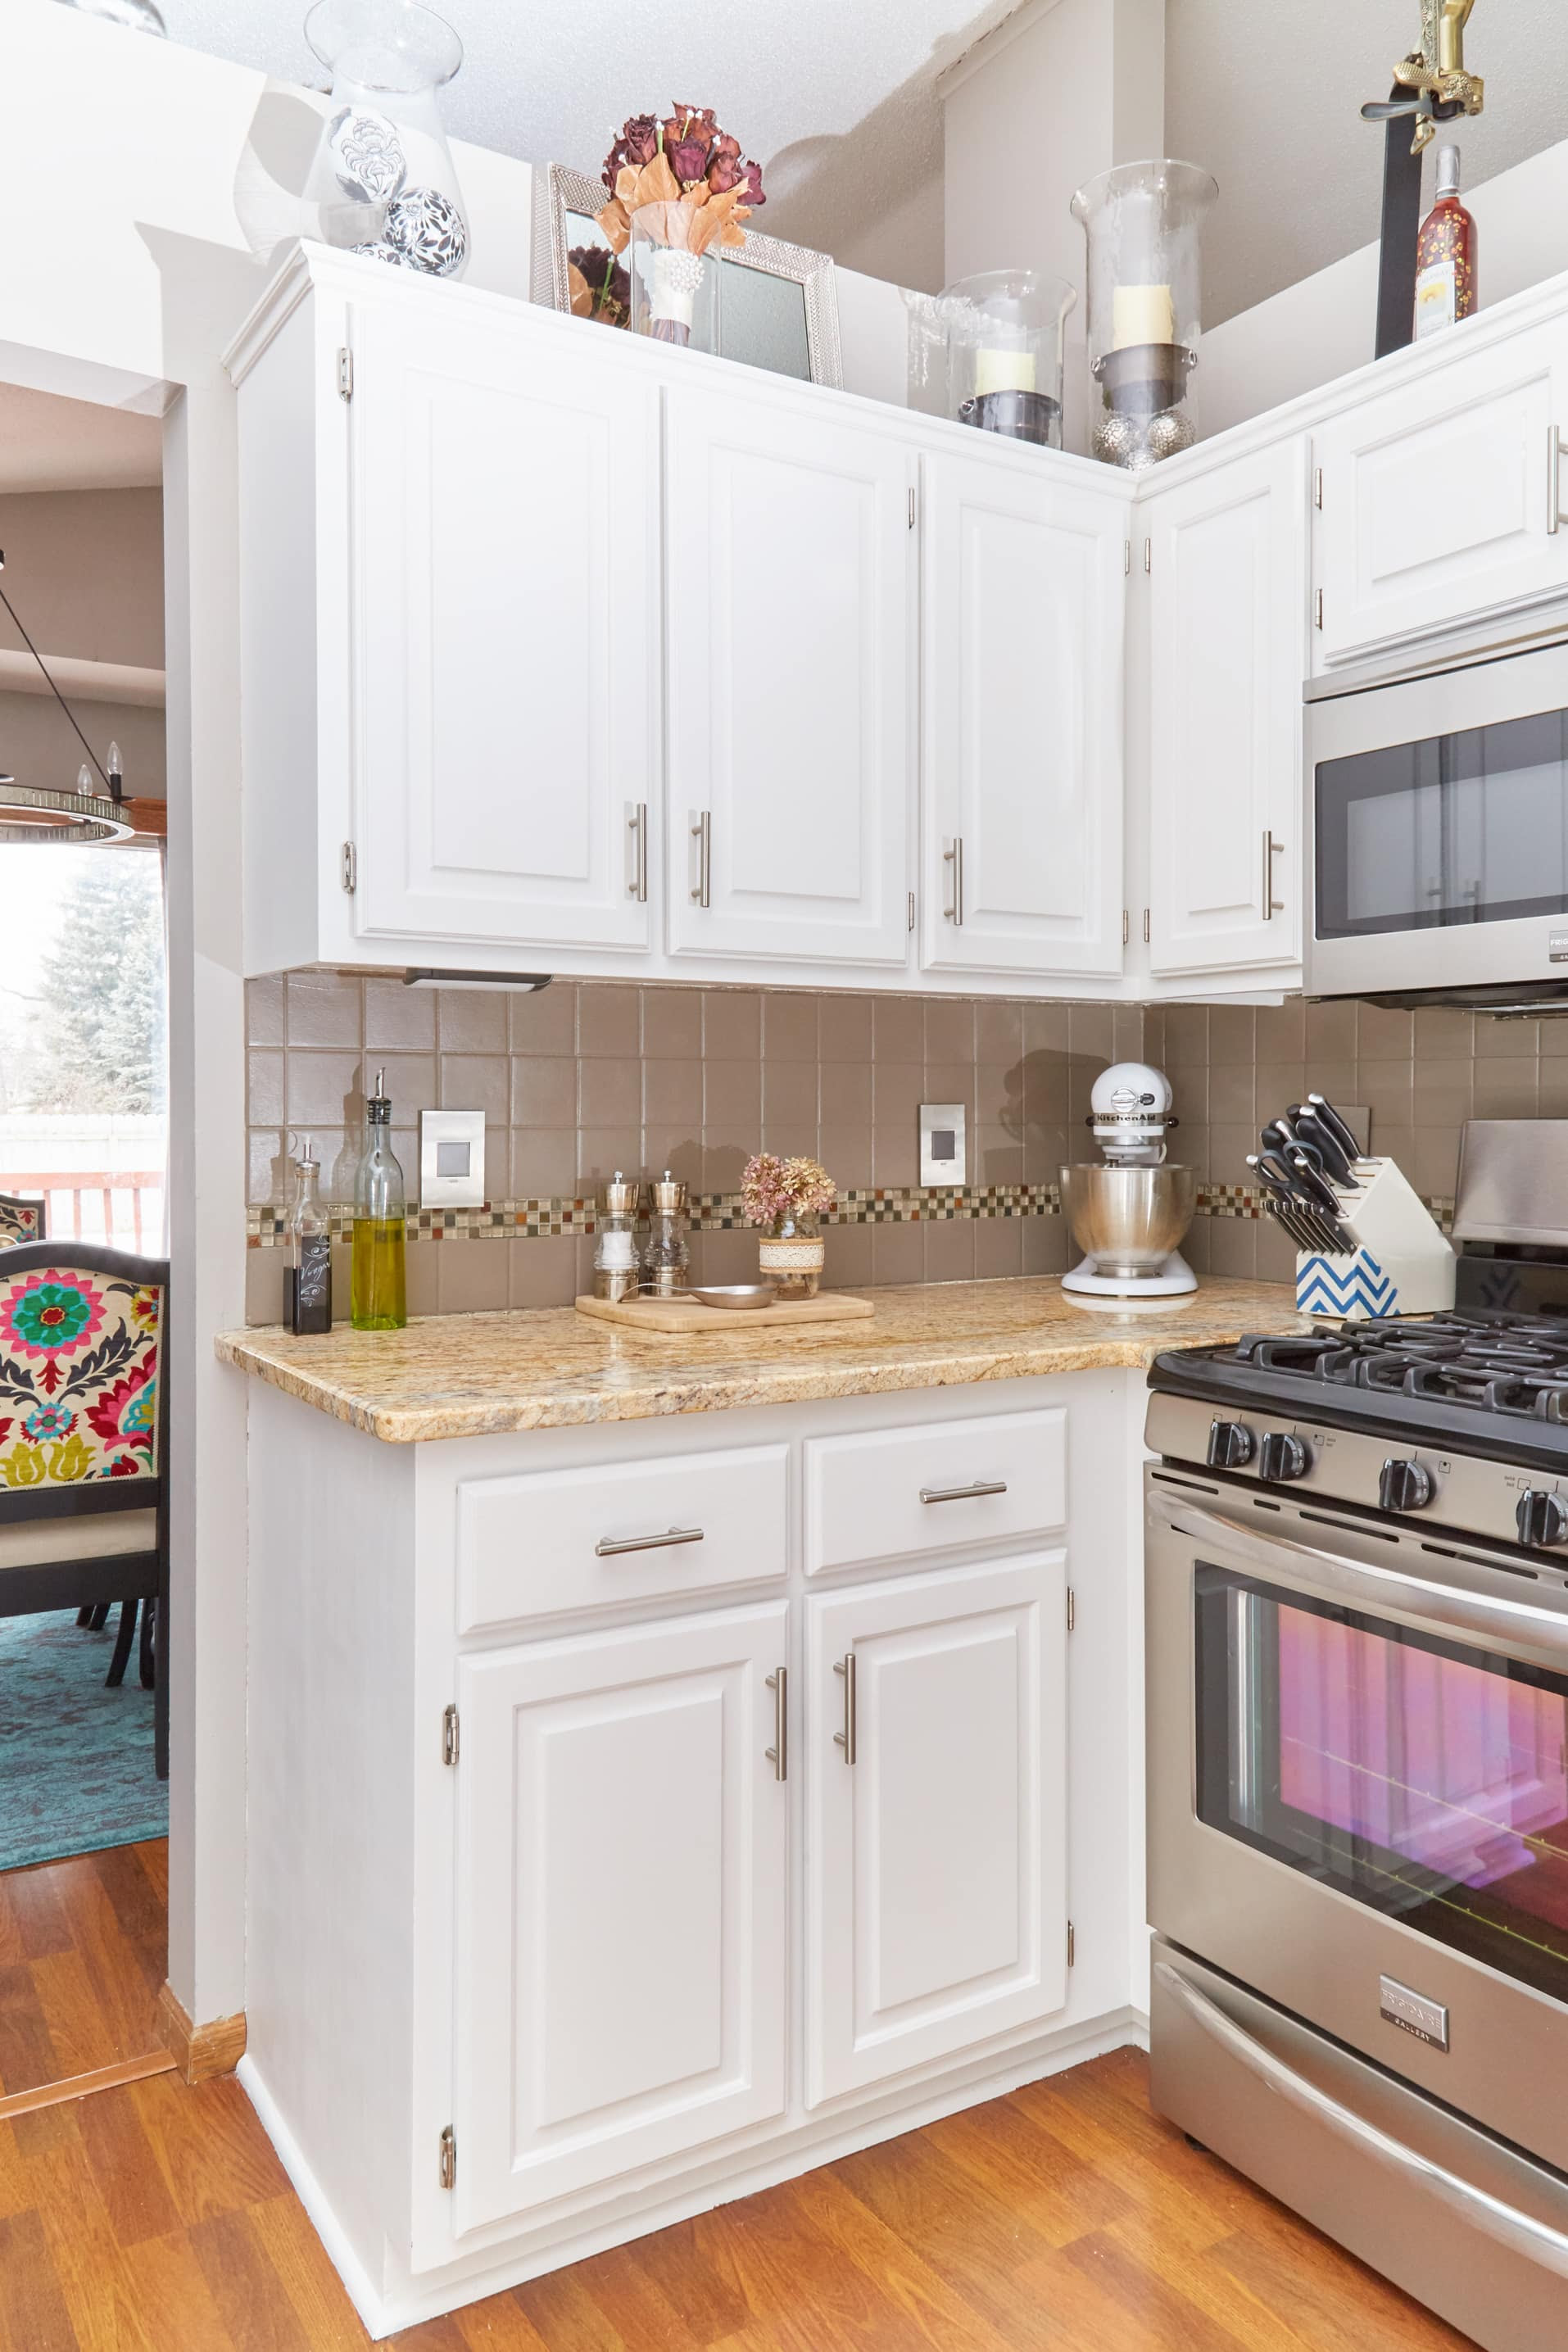 The Best Way to Paint Your Kitchen Cabinets ...